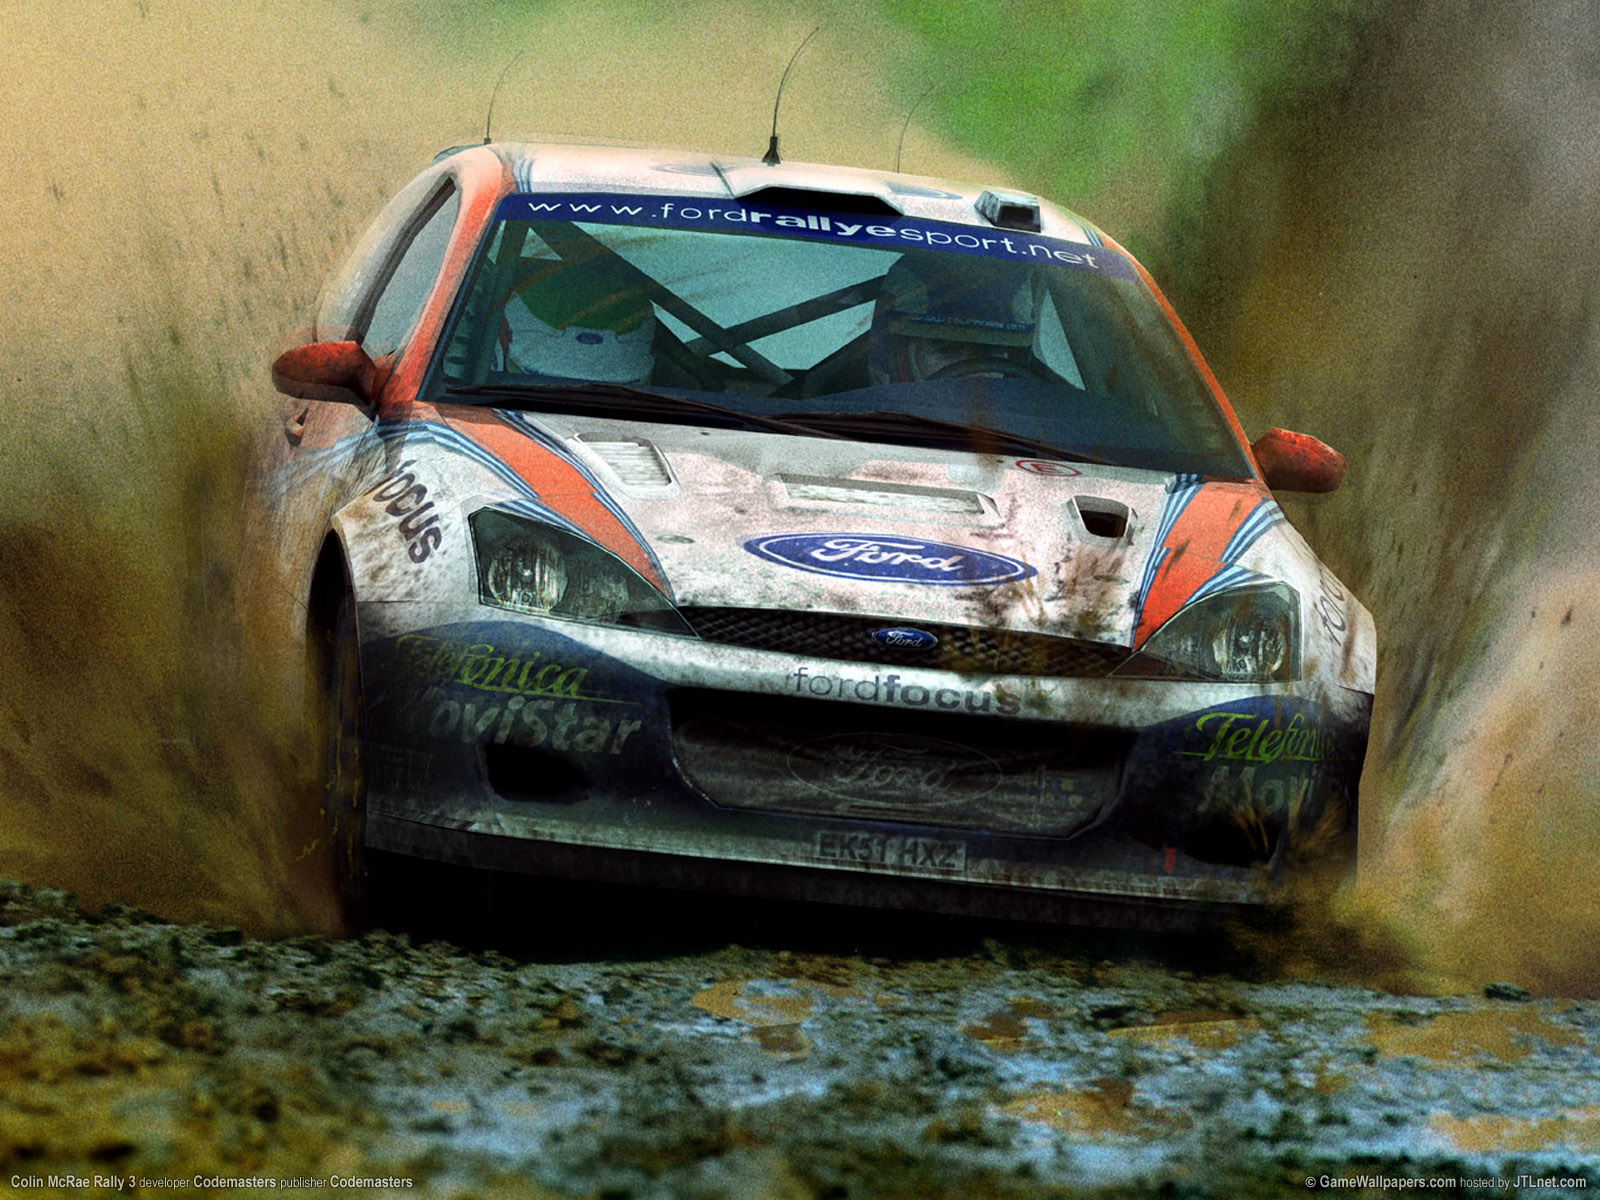 1600x1200 Colin McRae Rally 3 desktop PC and Mac wallpaper